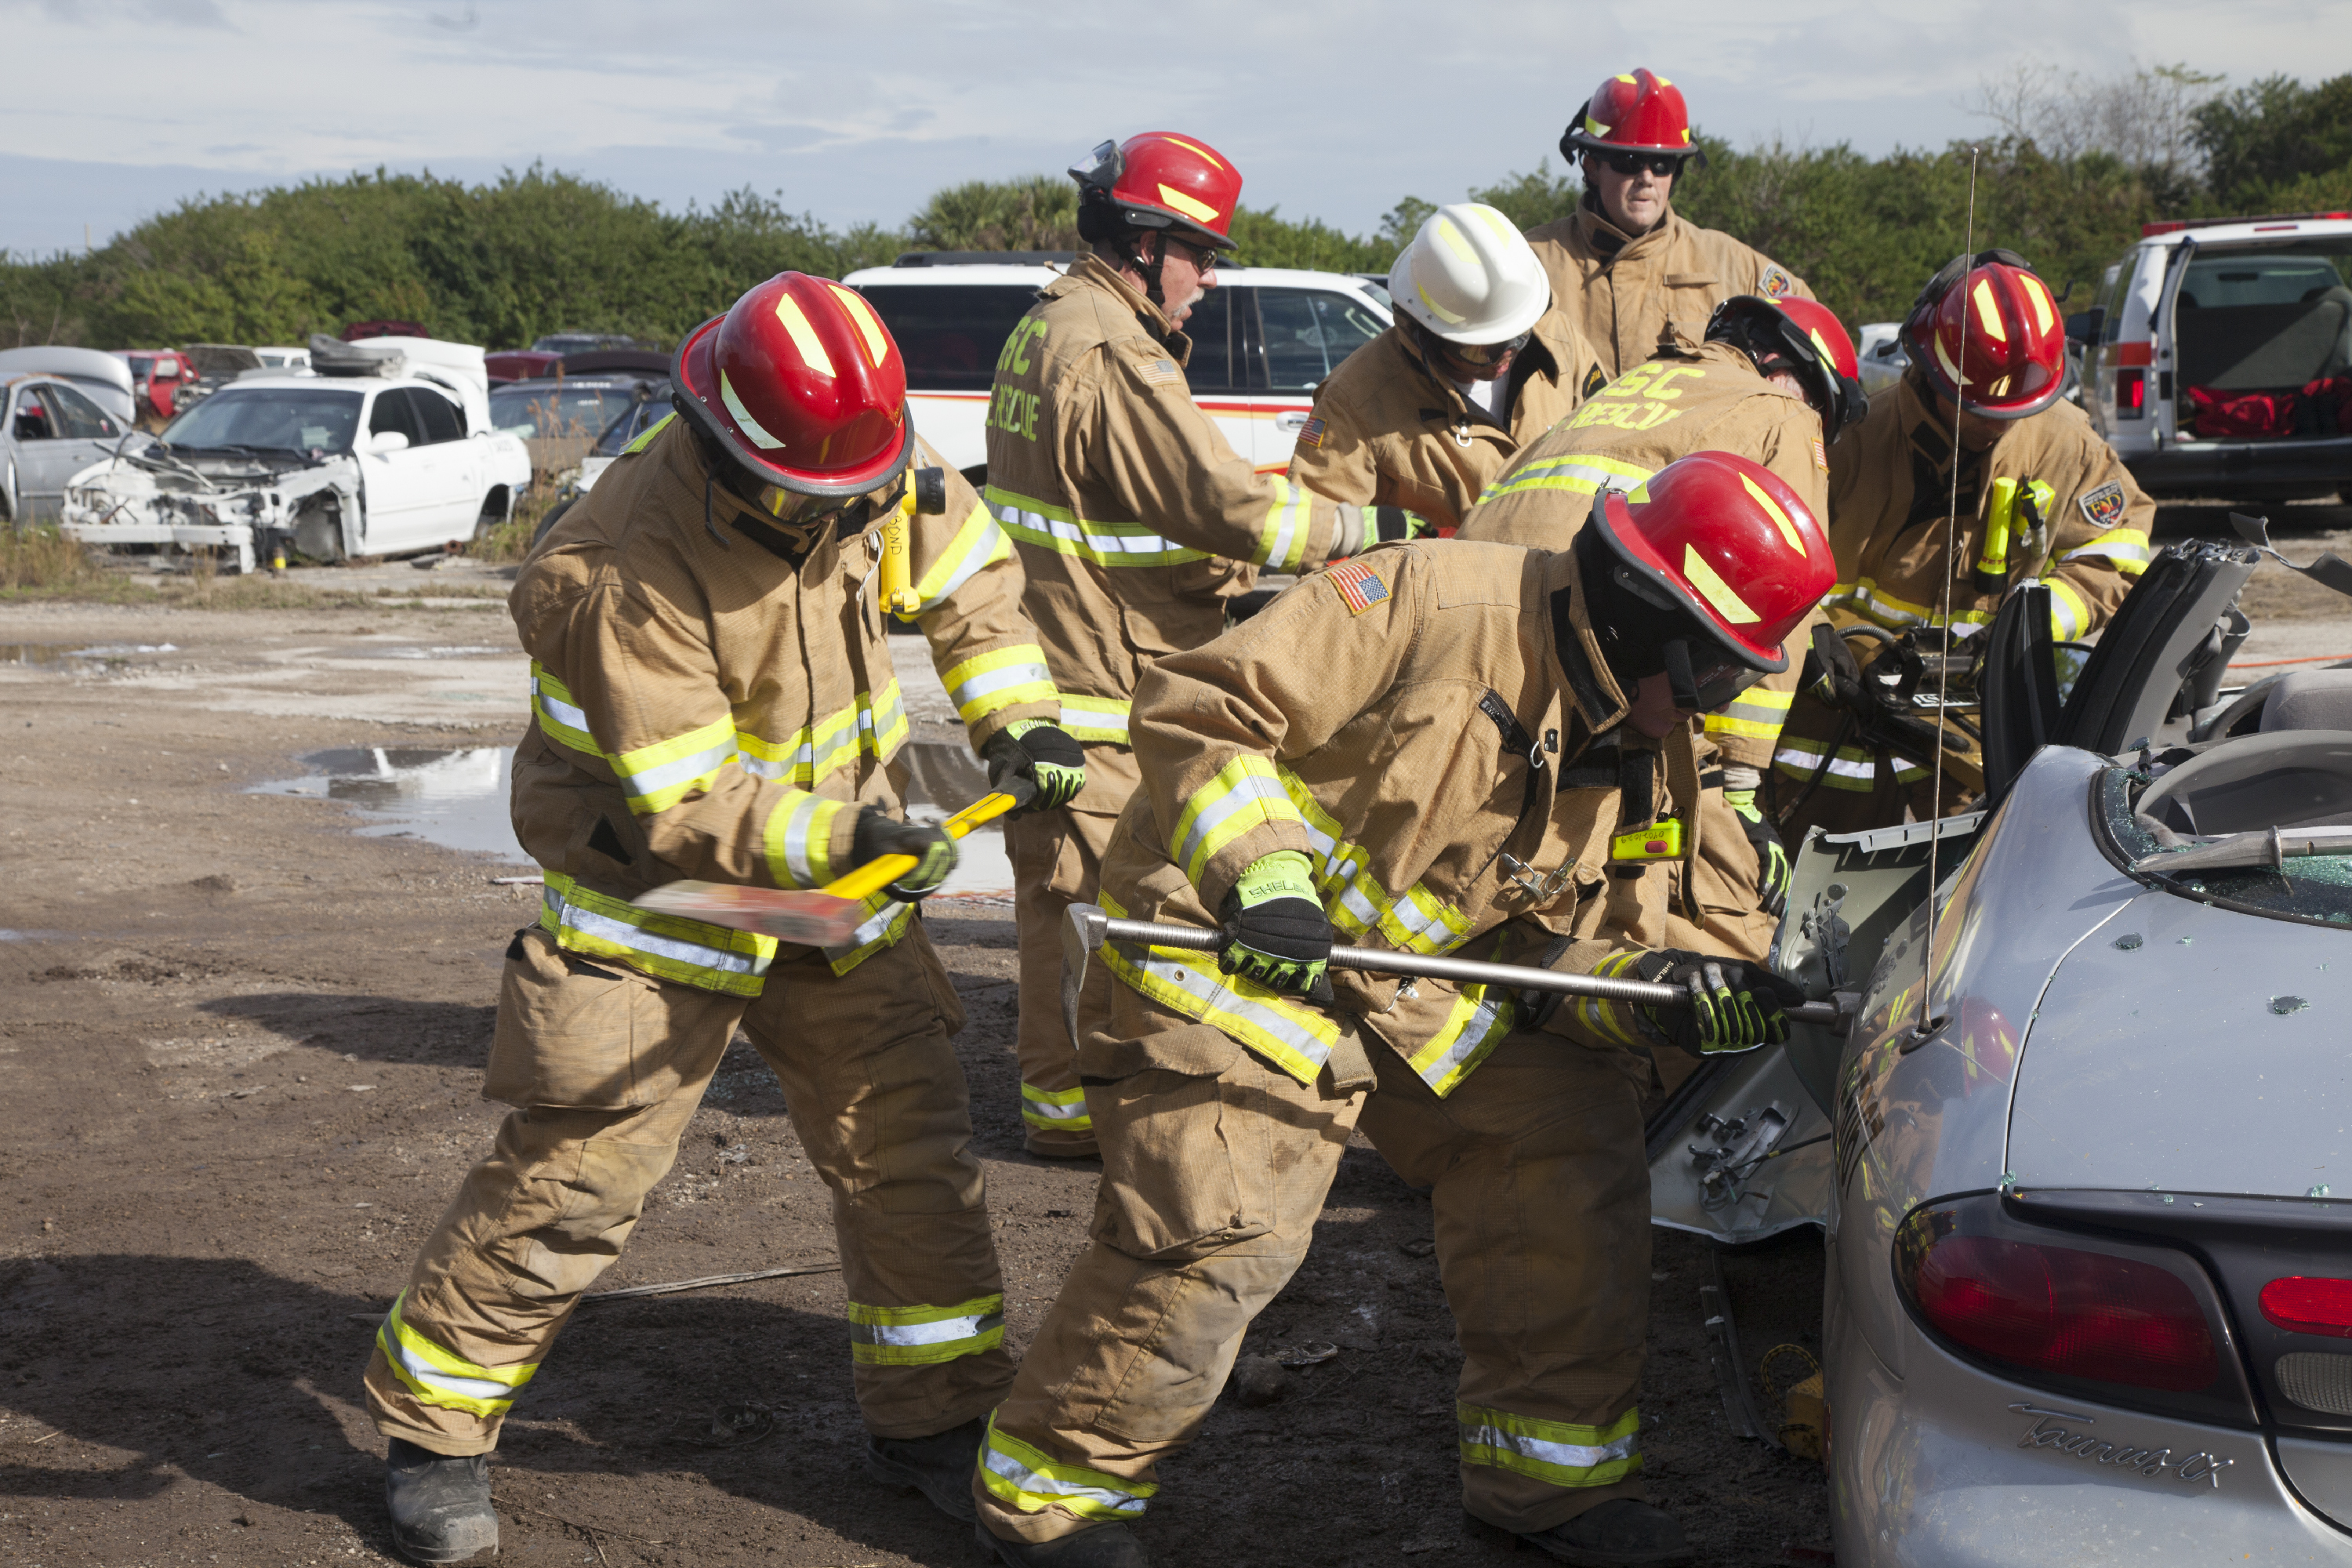 Firefighters Practice Rescue Operations With Jaws Of Life